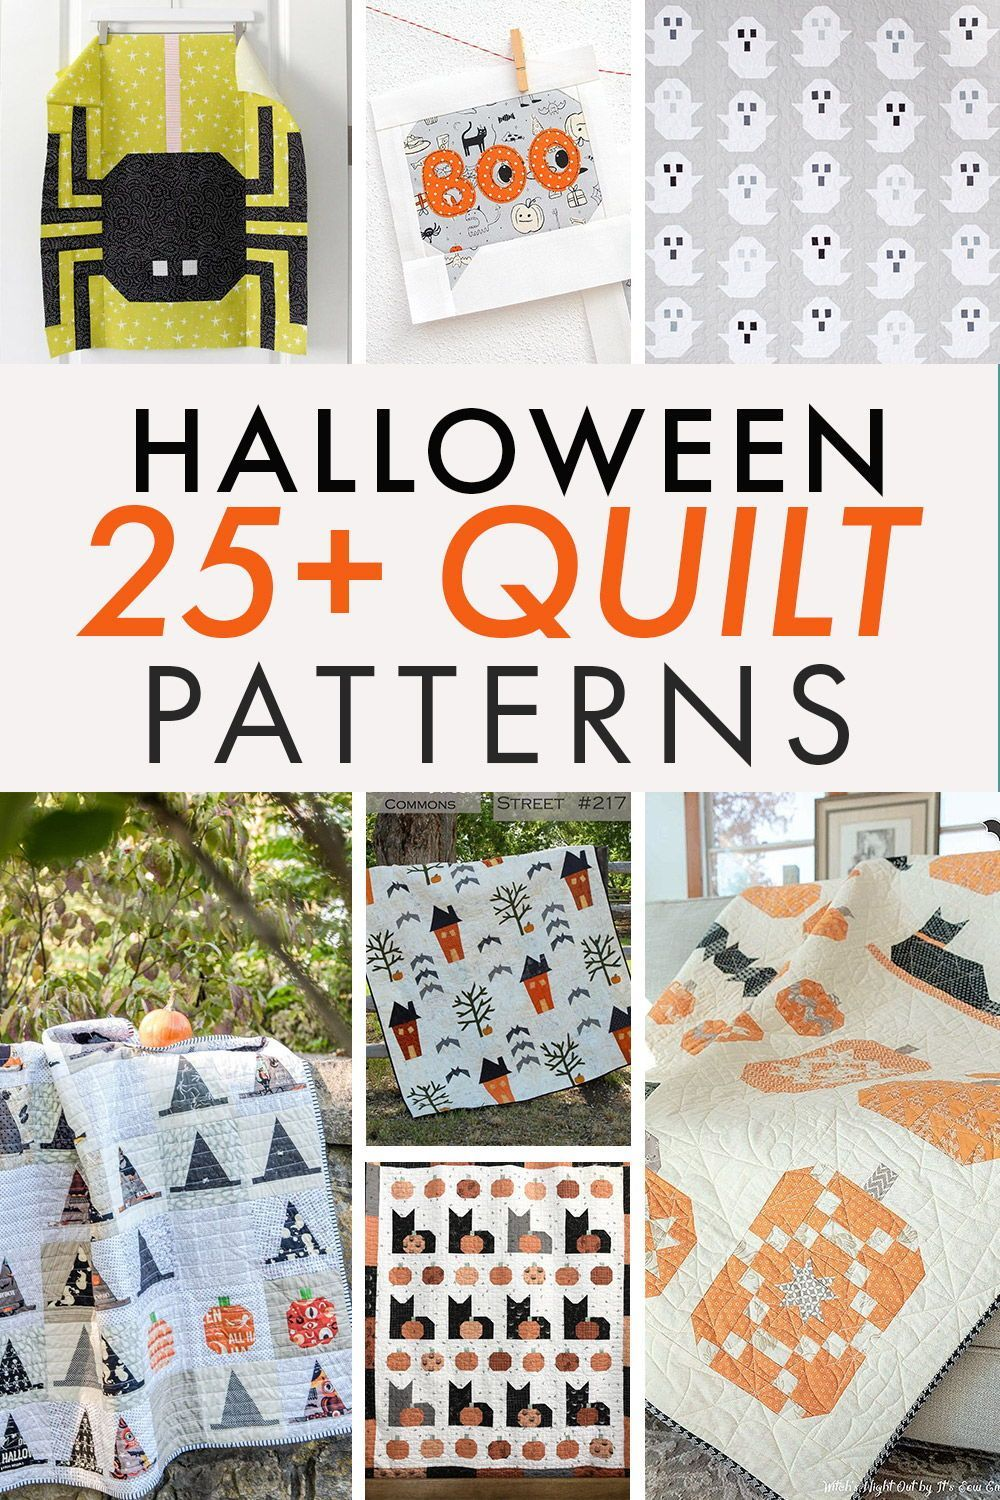 Halloween Quilts, Patterns 2020 Sewing and Quilting Patterns and Tutorials   Coral + Co. in 2020